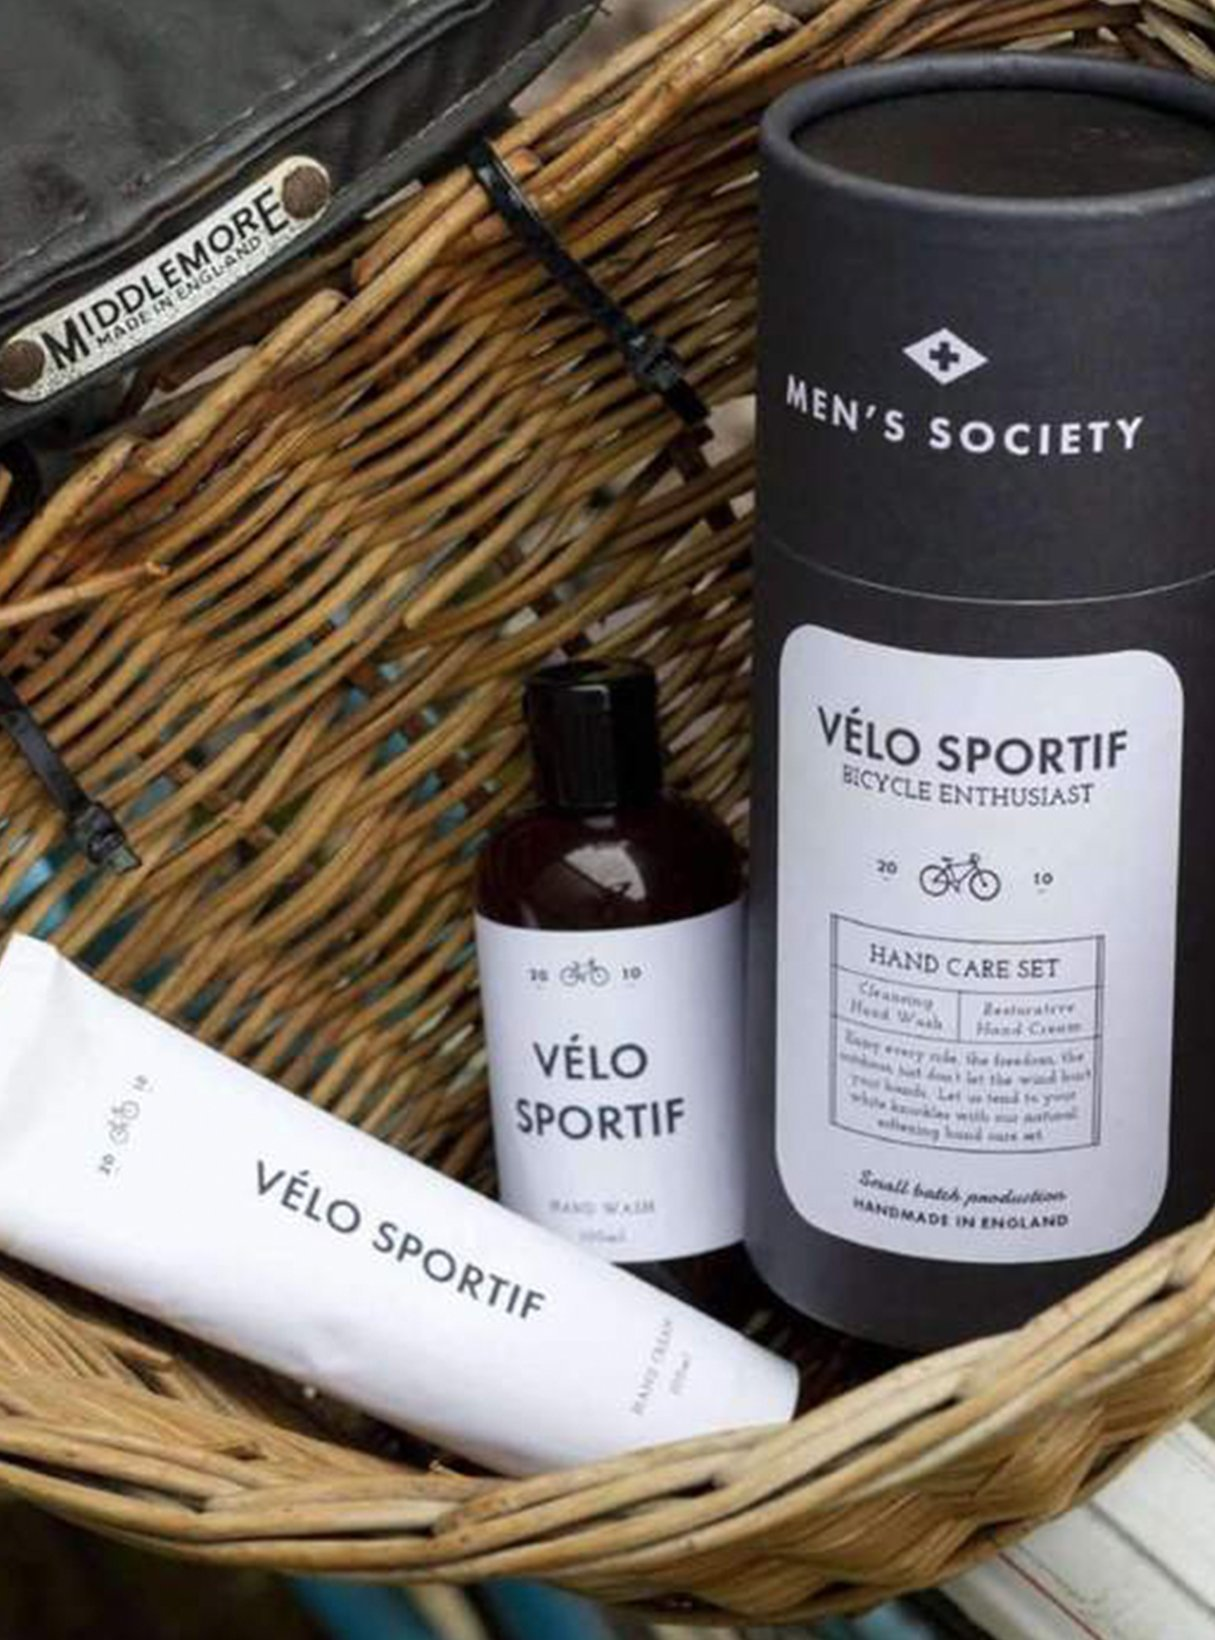 Velo sportif - hand care set